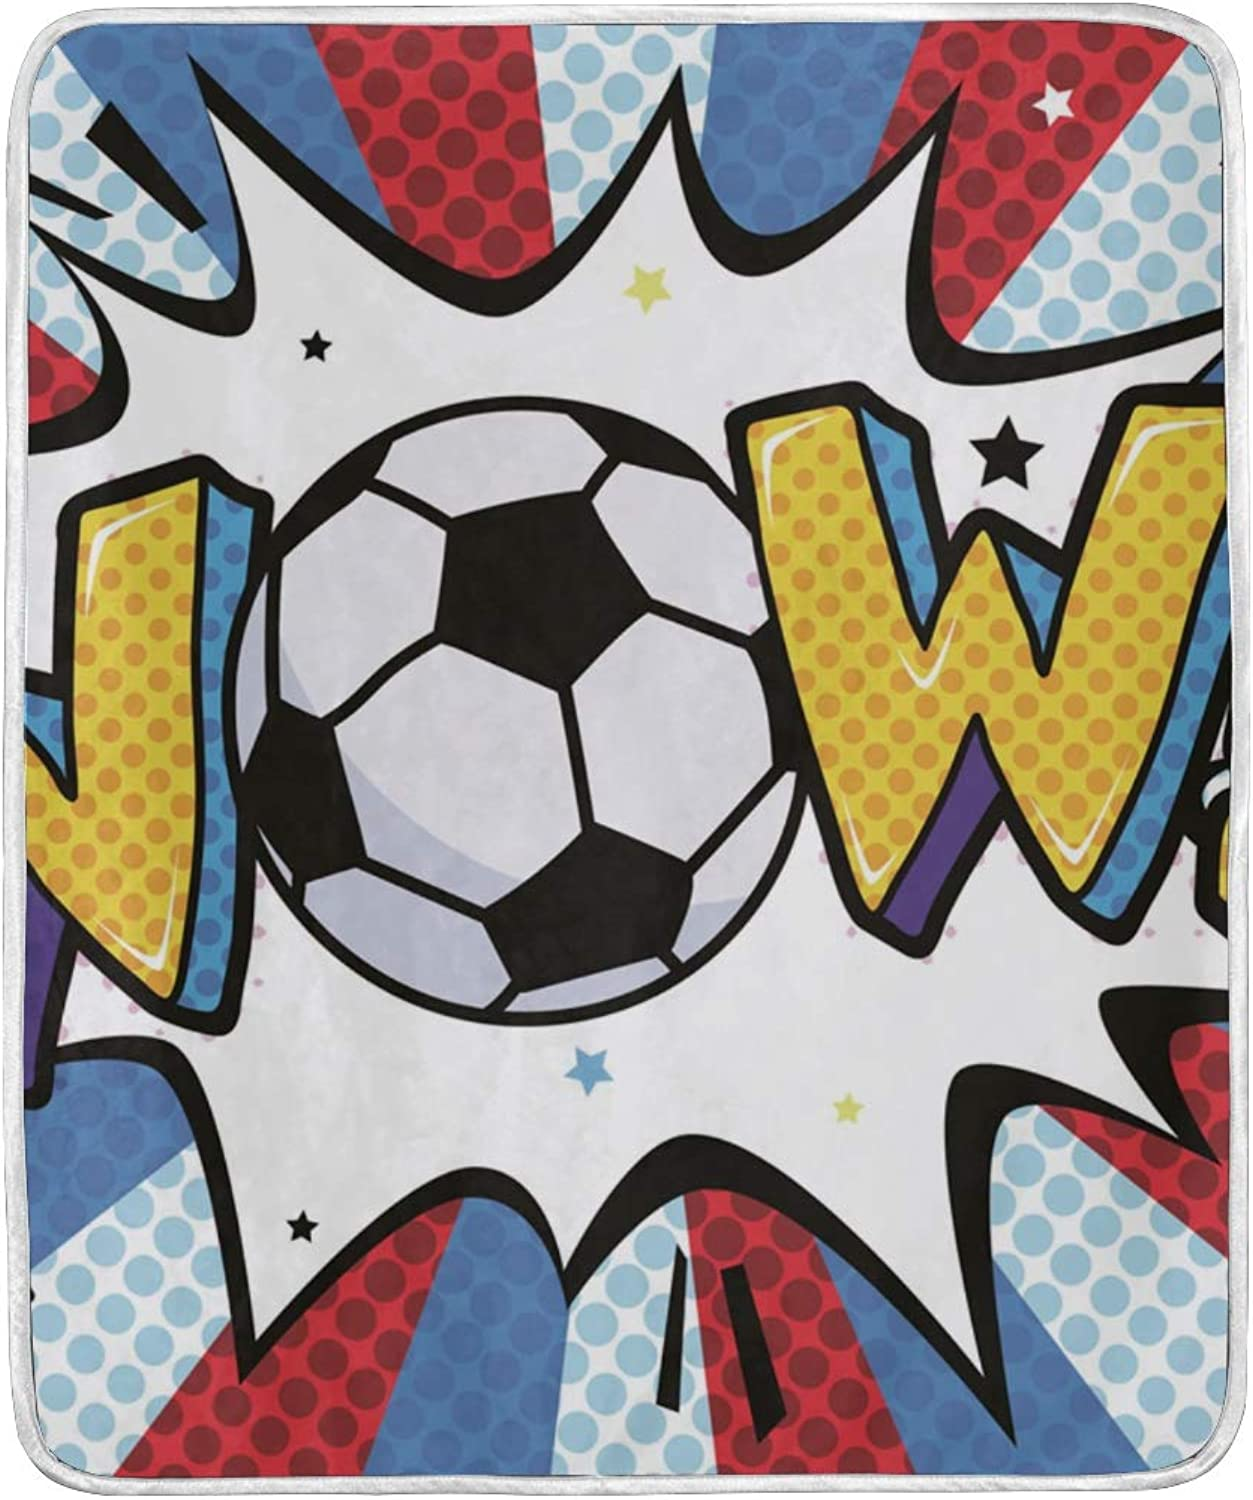 WIHVE Home Decor Blanket Wow Soccer Ball Throw Lightweight Soft Warm Blankets for Bed Couch Sofa 50 X 60 Inches